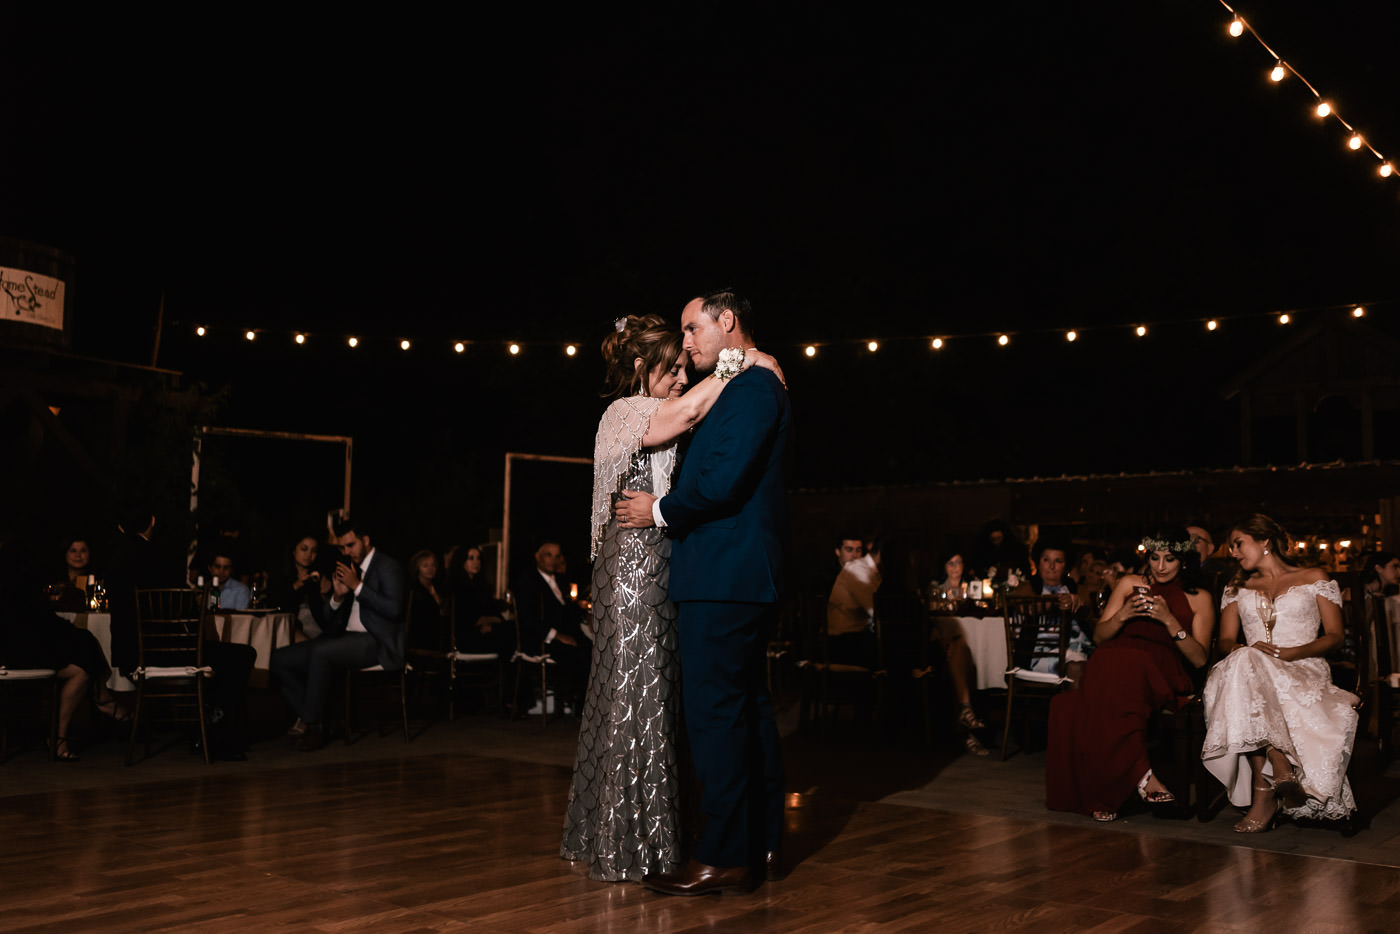 Mother and son have a lovely dance at the reception.